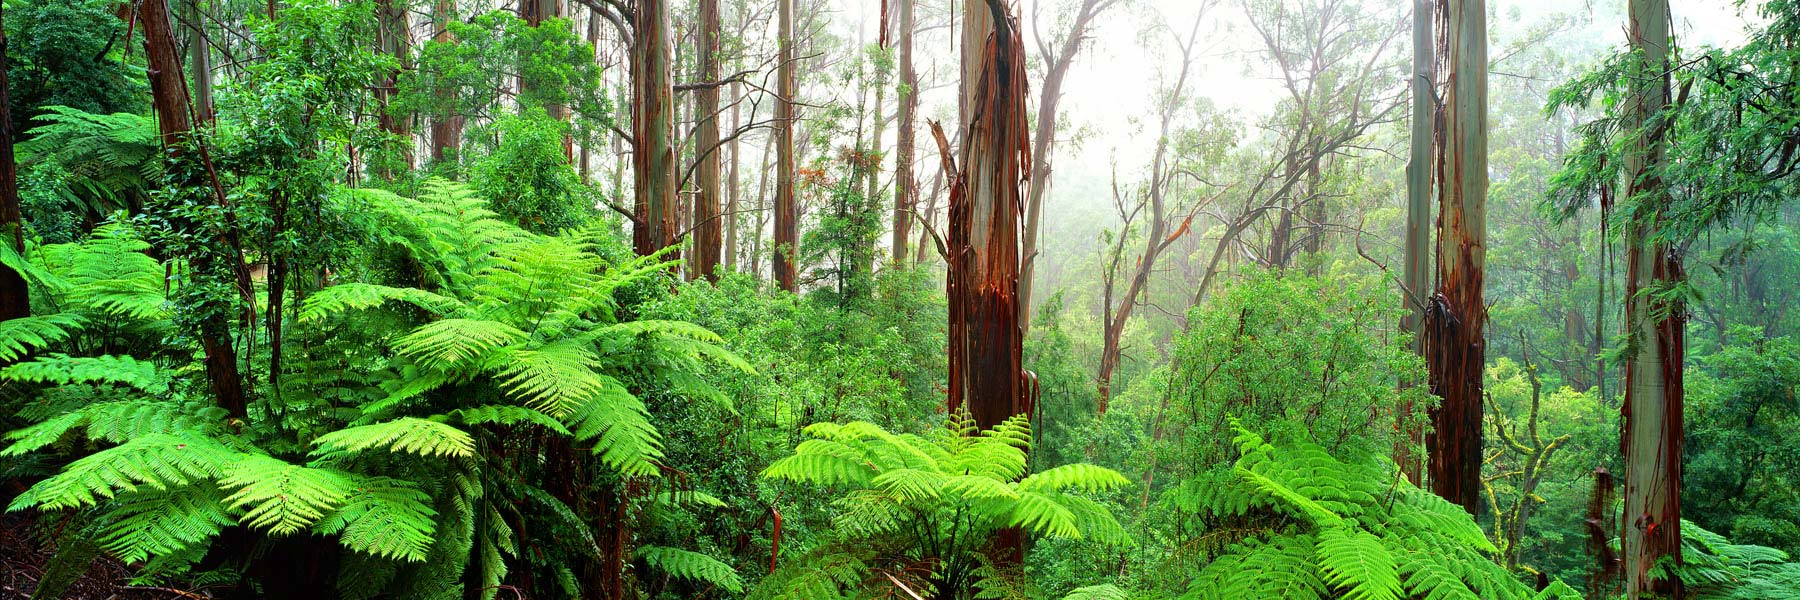 Mountain Ash trees and giant ferns surrounded by mist, Strzelecki Ranges, Vicroria, Australia.